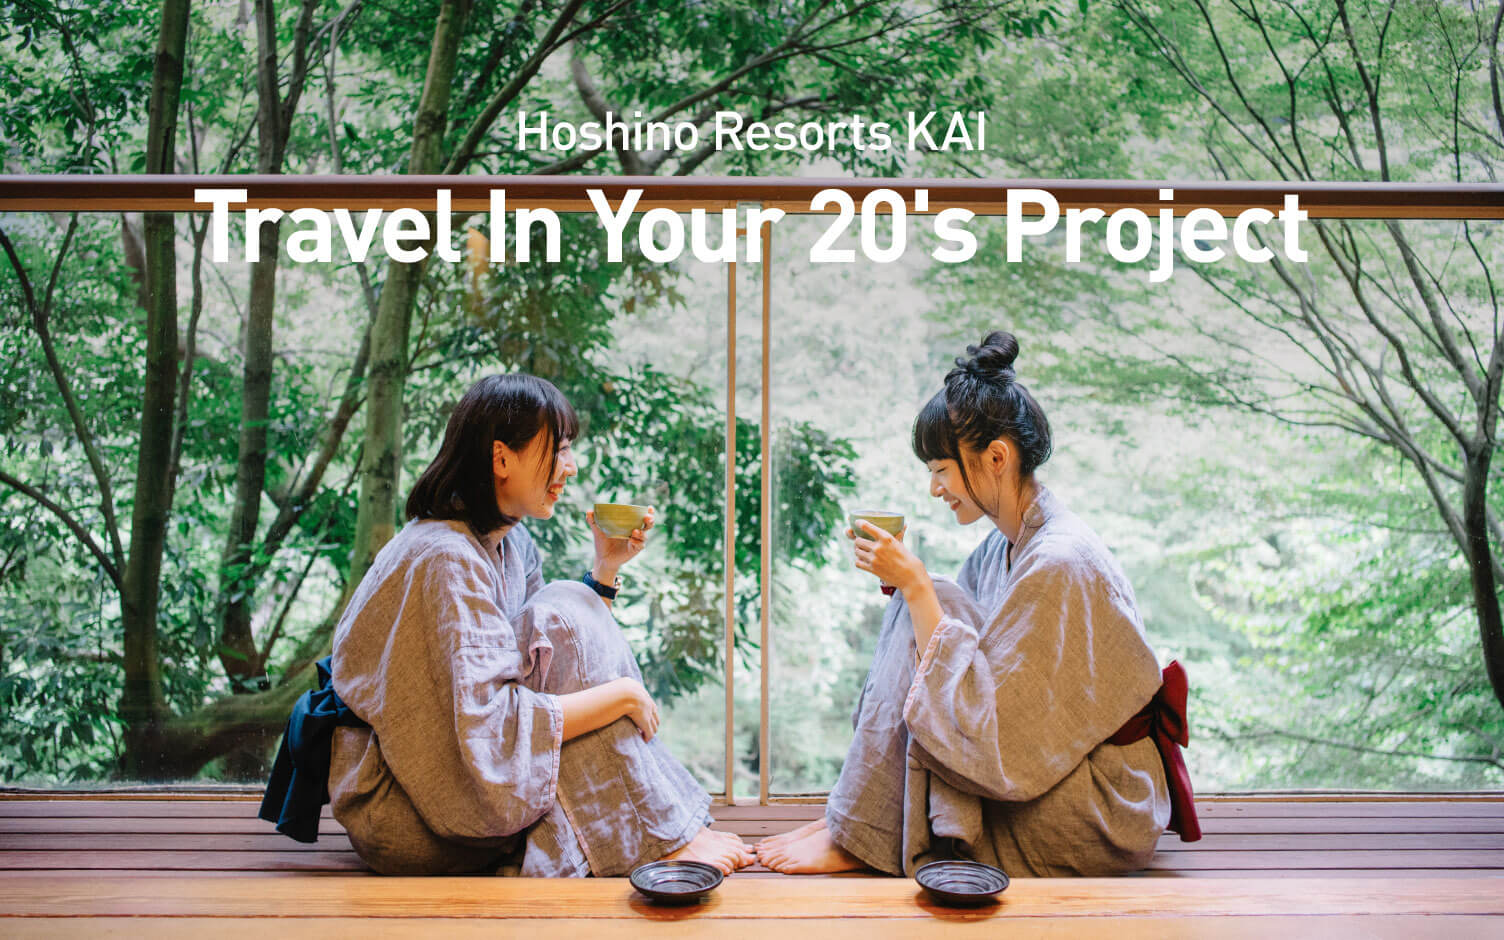 KAI, Travel in Your 20's Project Reservations Available